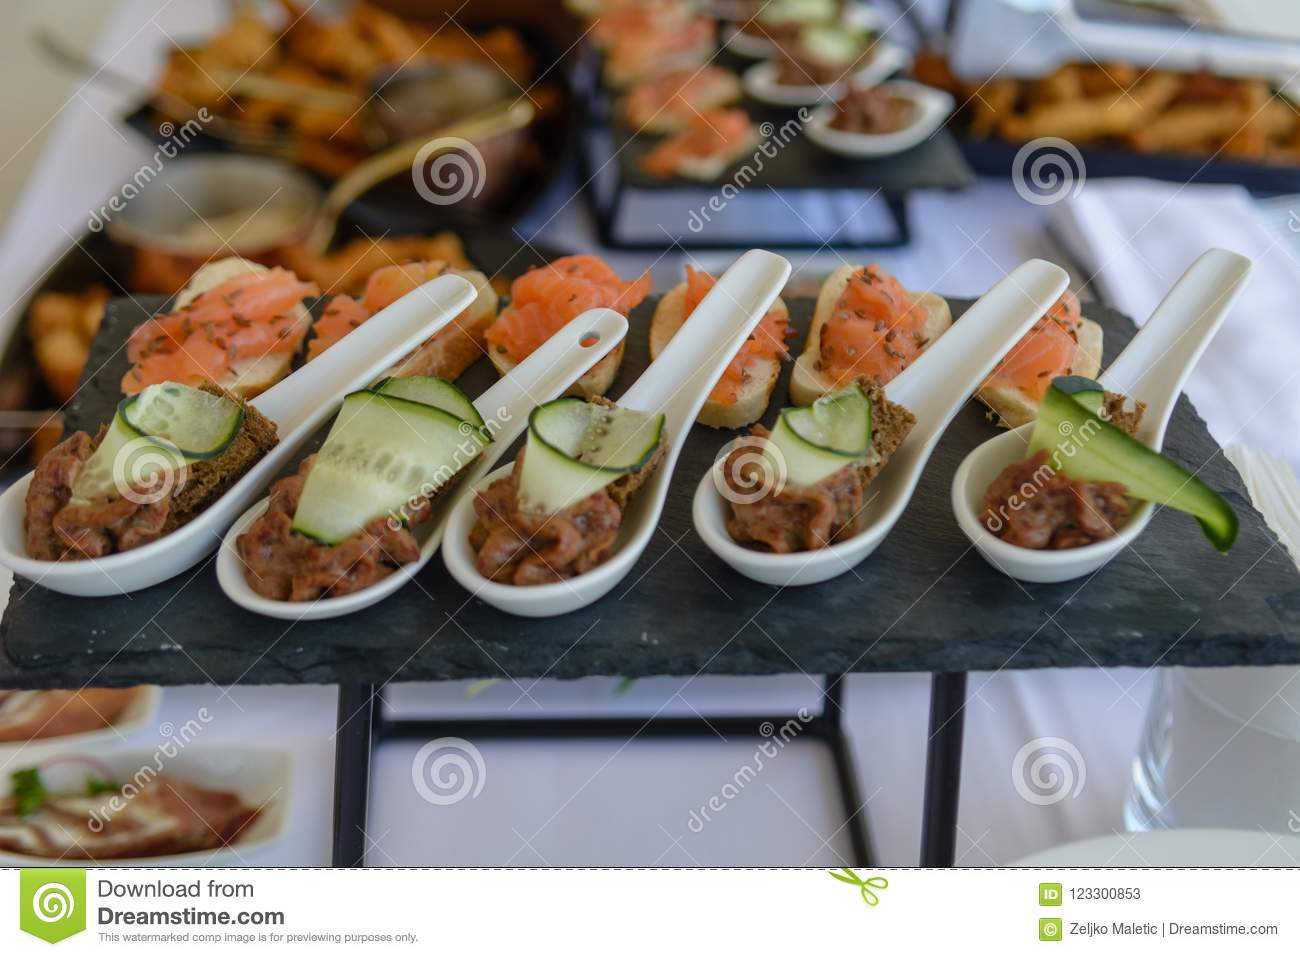 Tuna Pate In White Spoon Stock Image Image Of Cucumber 123300853